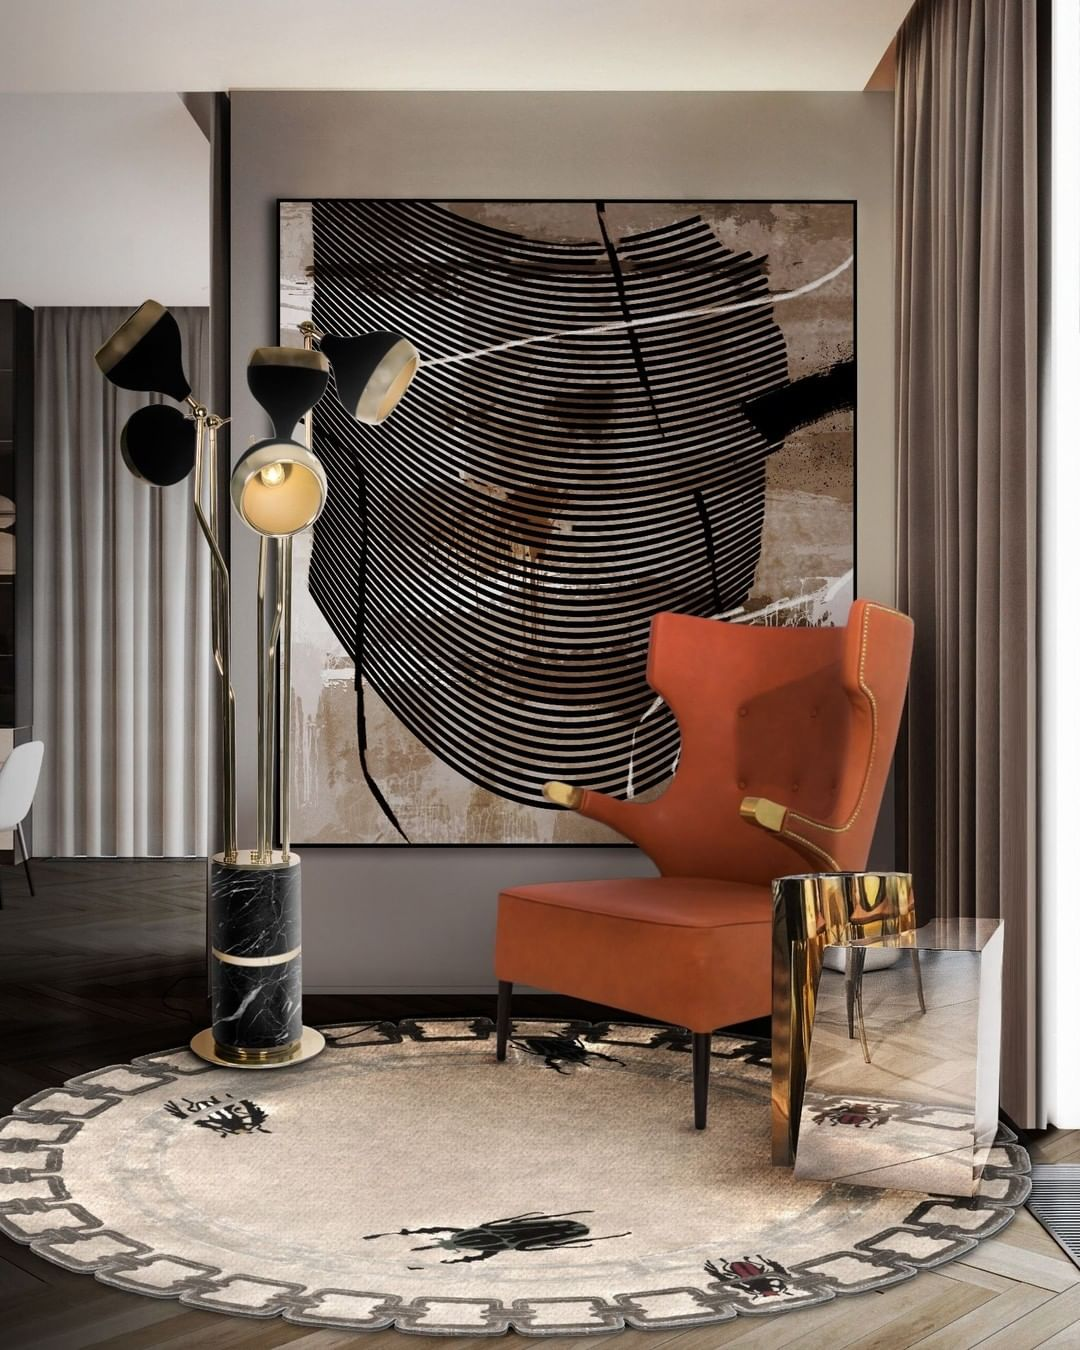 MAKE A SPECIAL LIVING ROOM WITH HANNA FLOOR LAMP